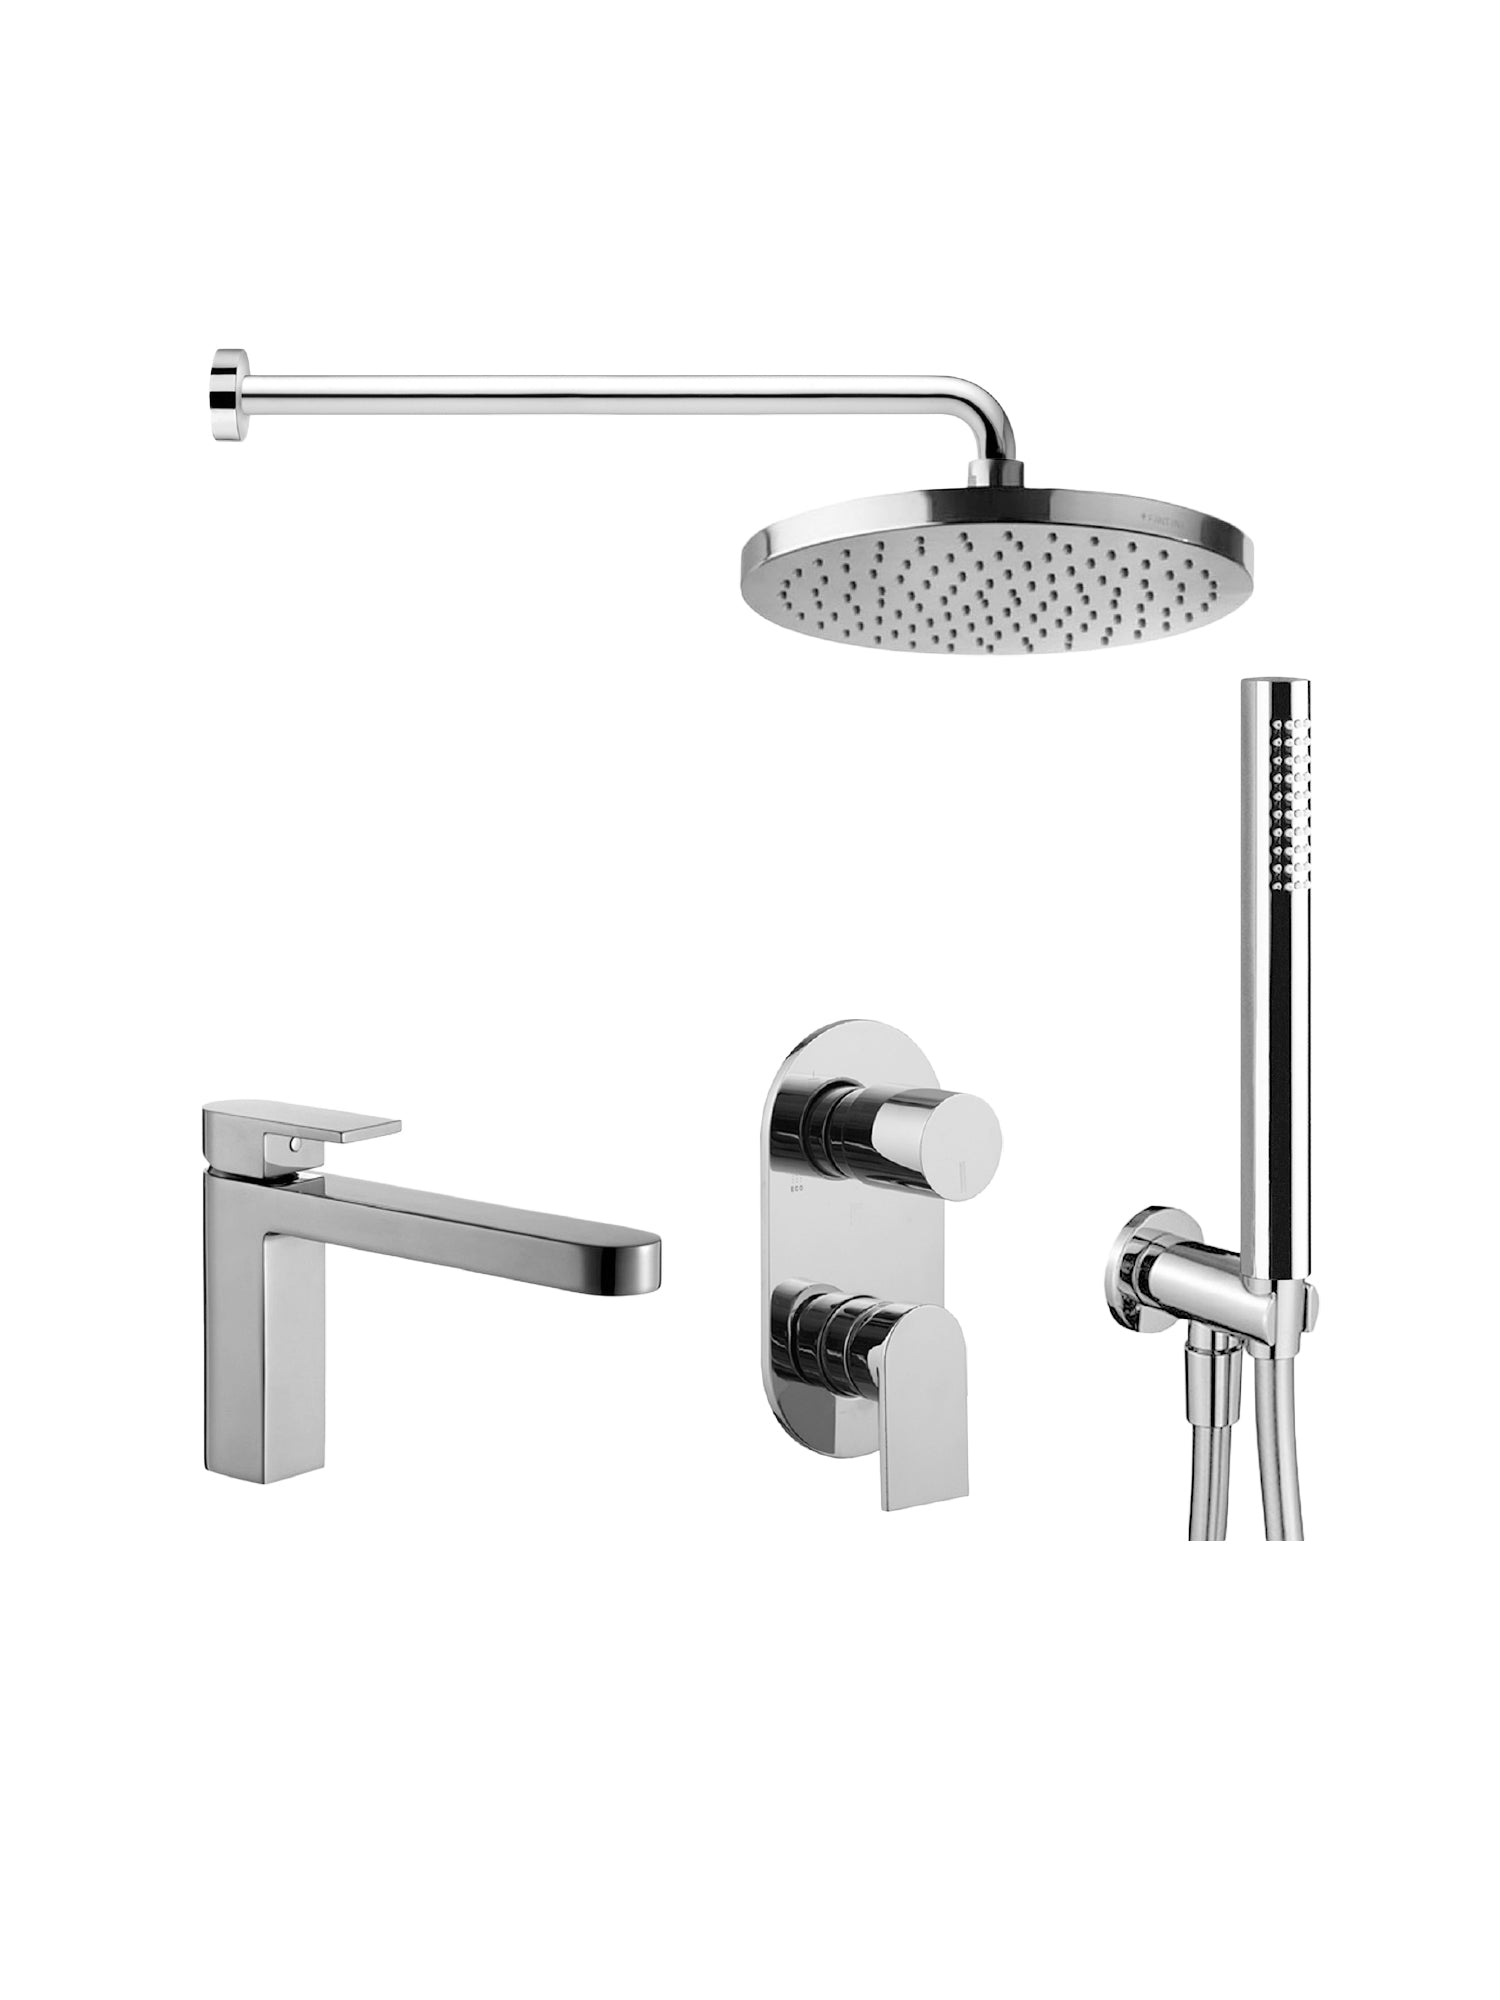 Fantini Mare Shower & Mixer Set 1 - Bundle by Hemsley